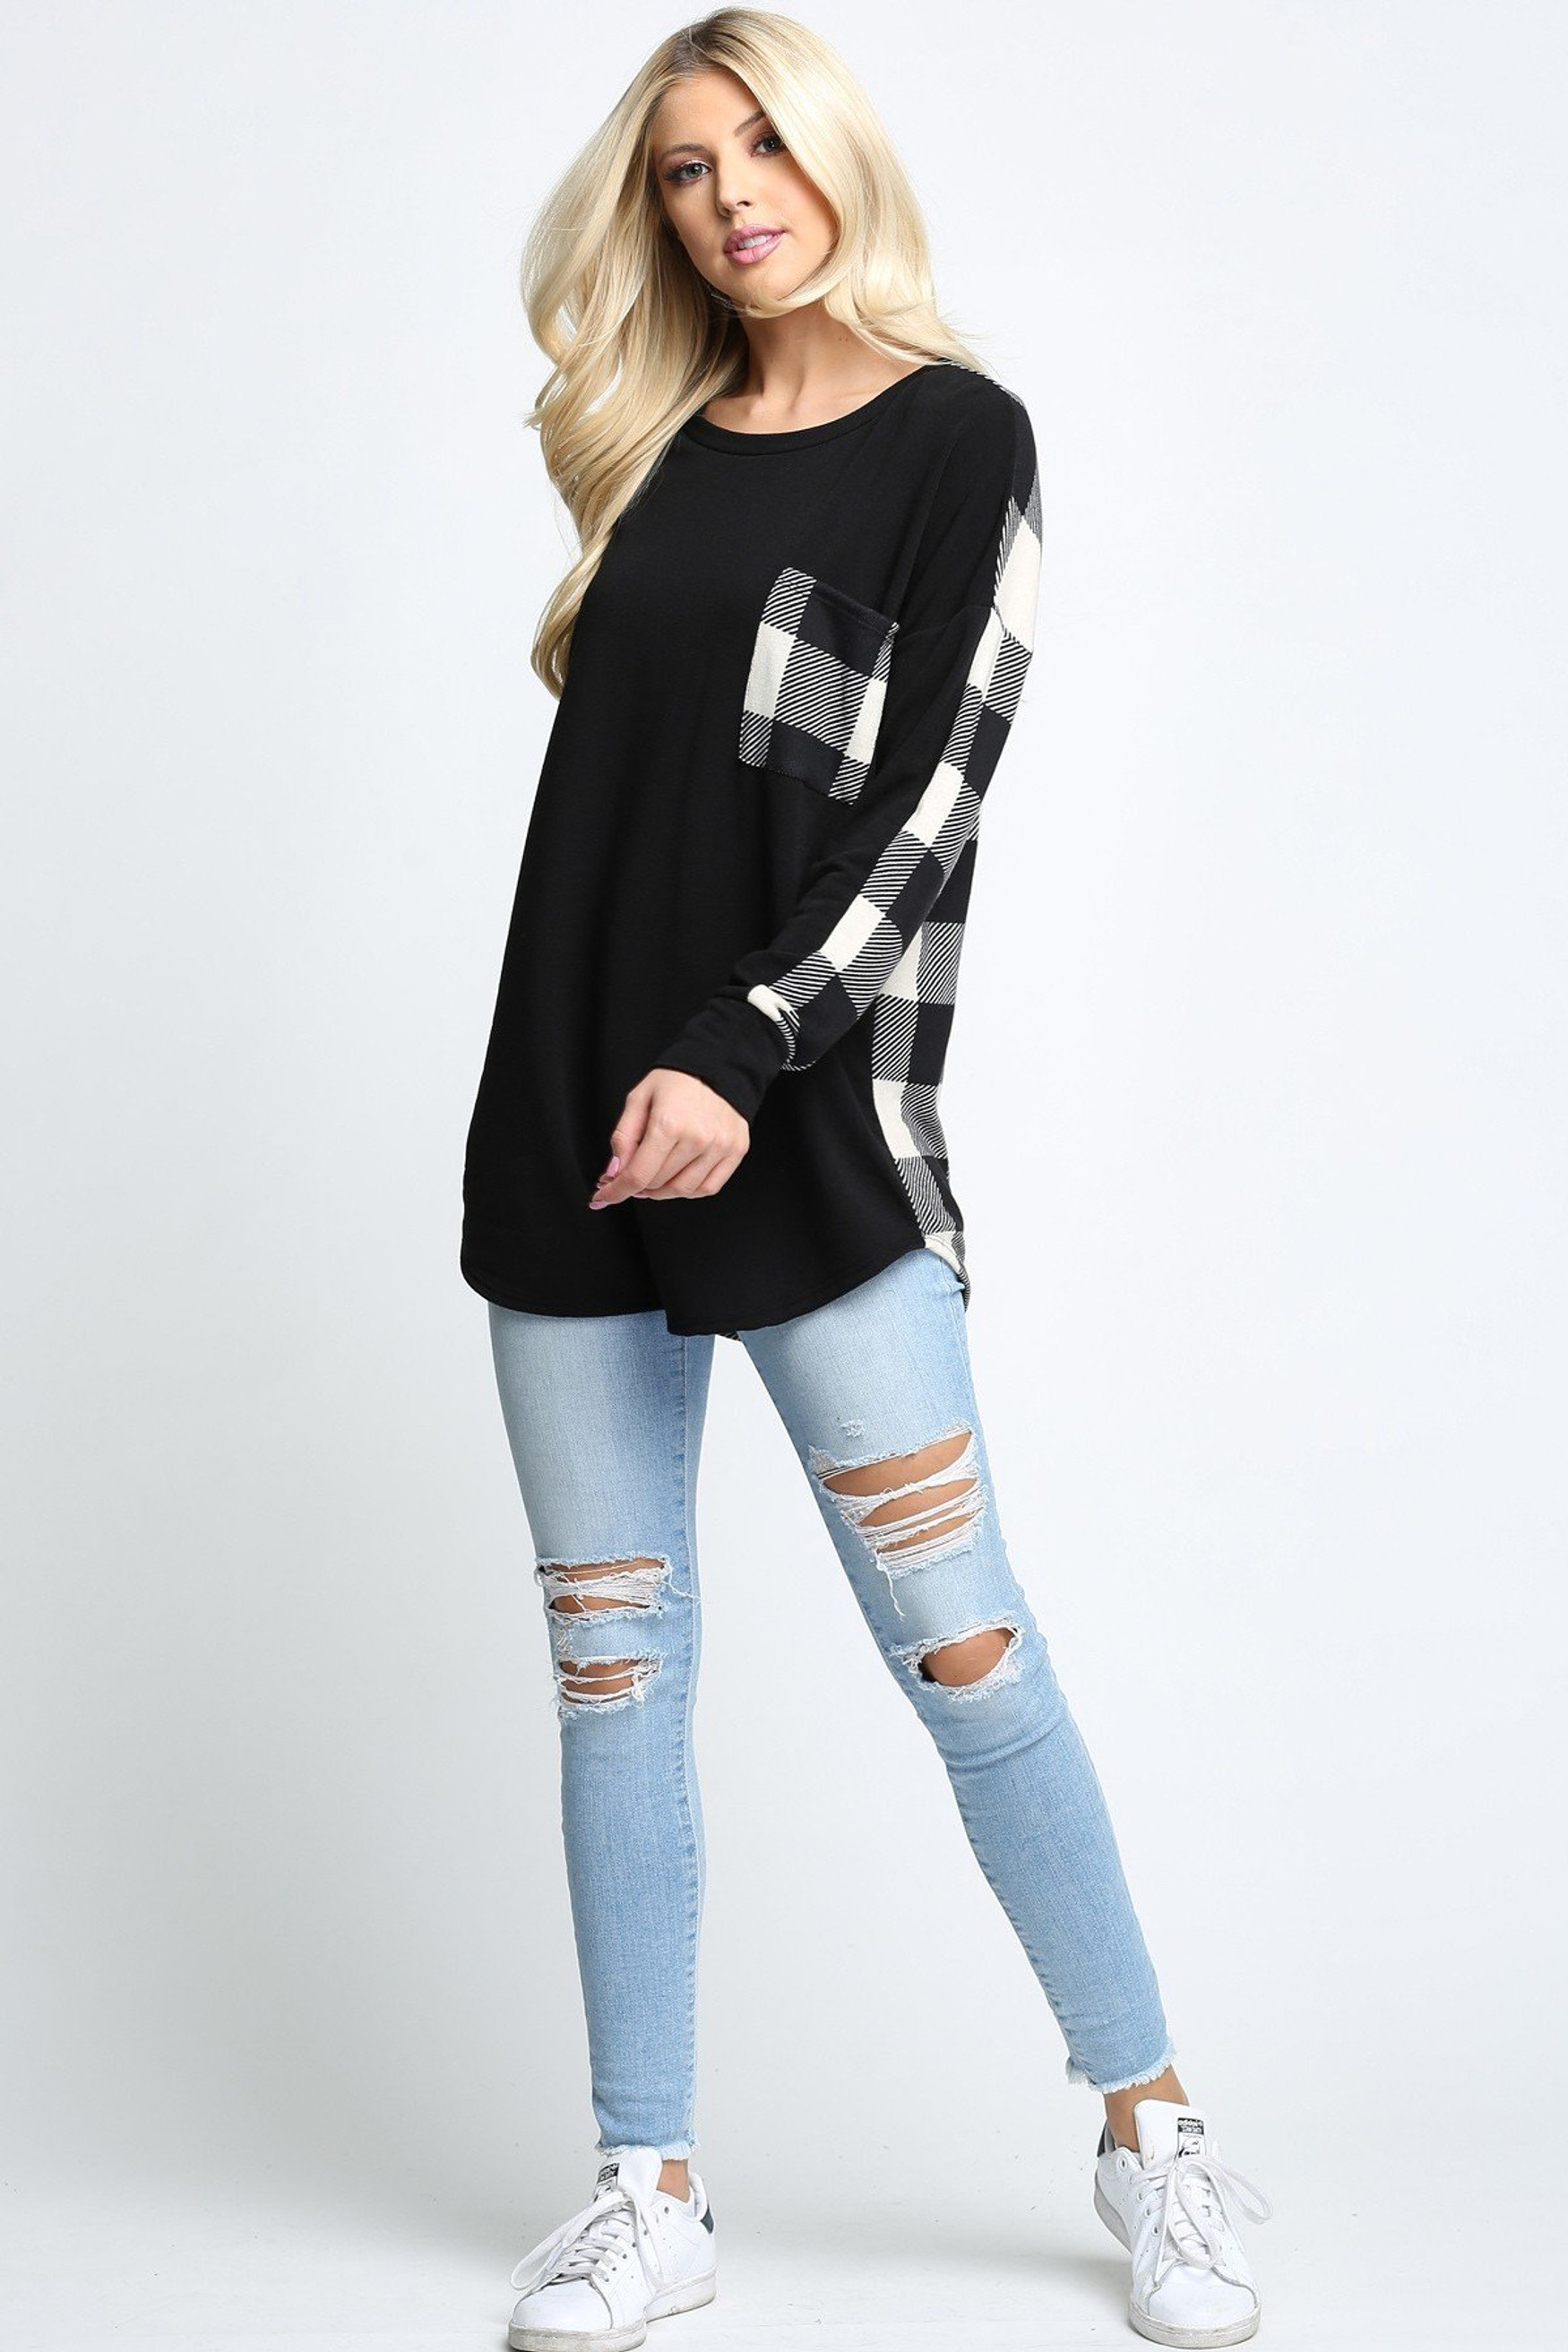 White Plaid Contrast Long Sleeve Plus Size Top with Front Pocket